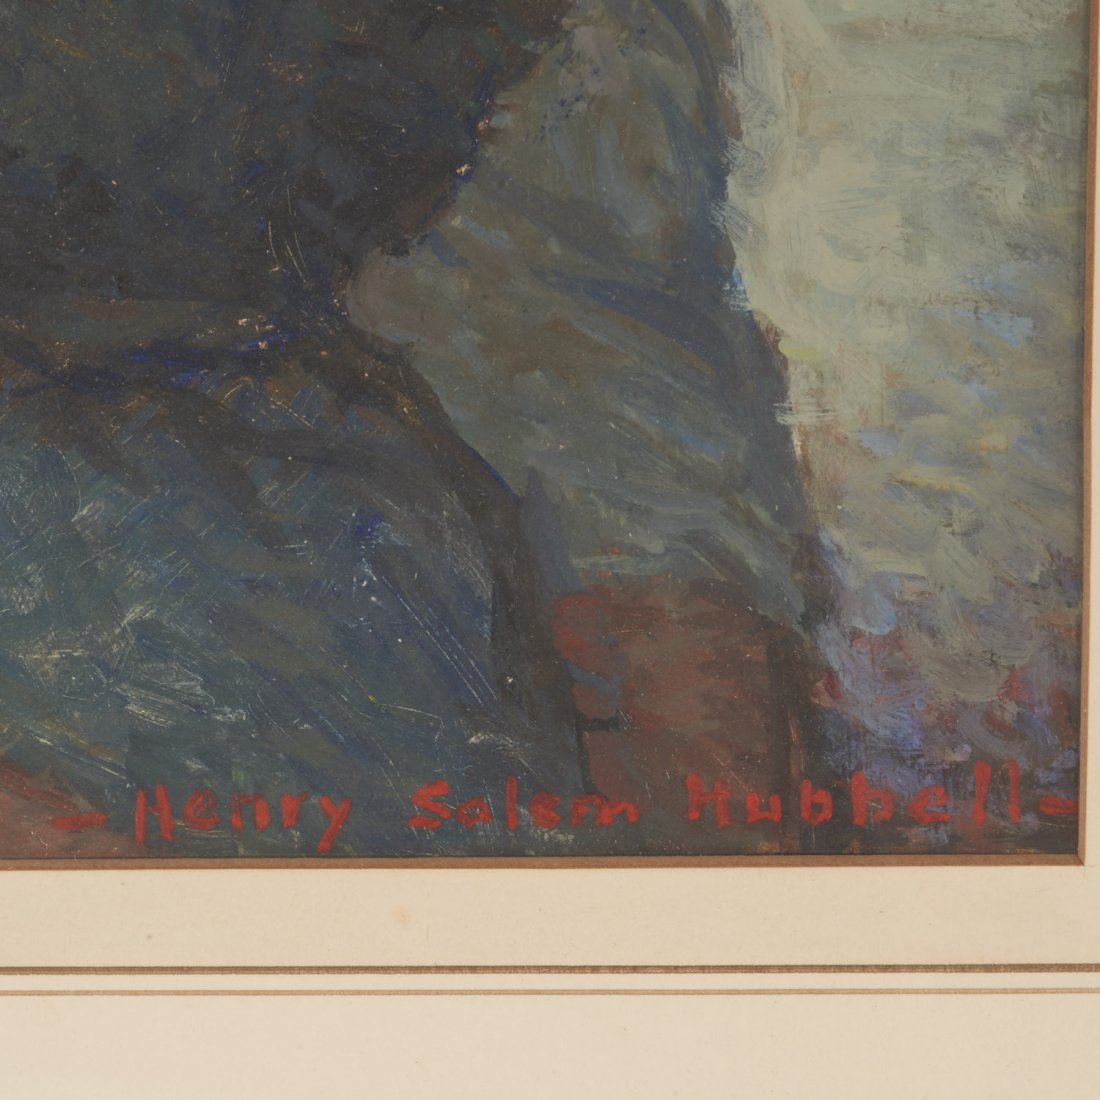 Henry Salem Hubbell, painting - 4